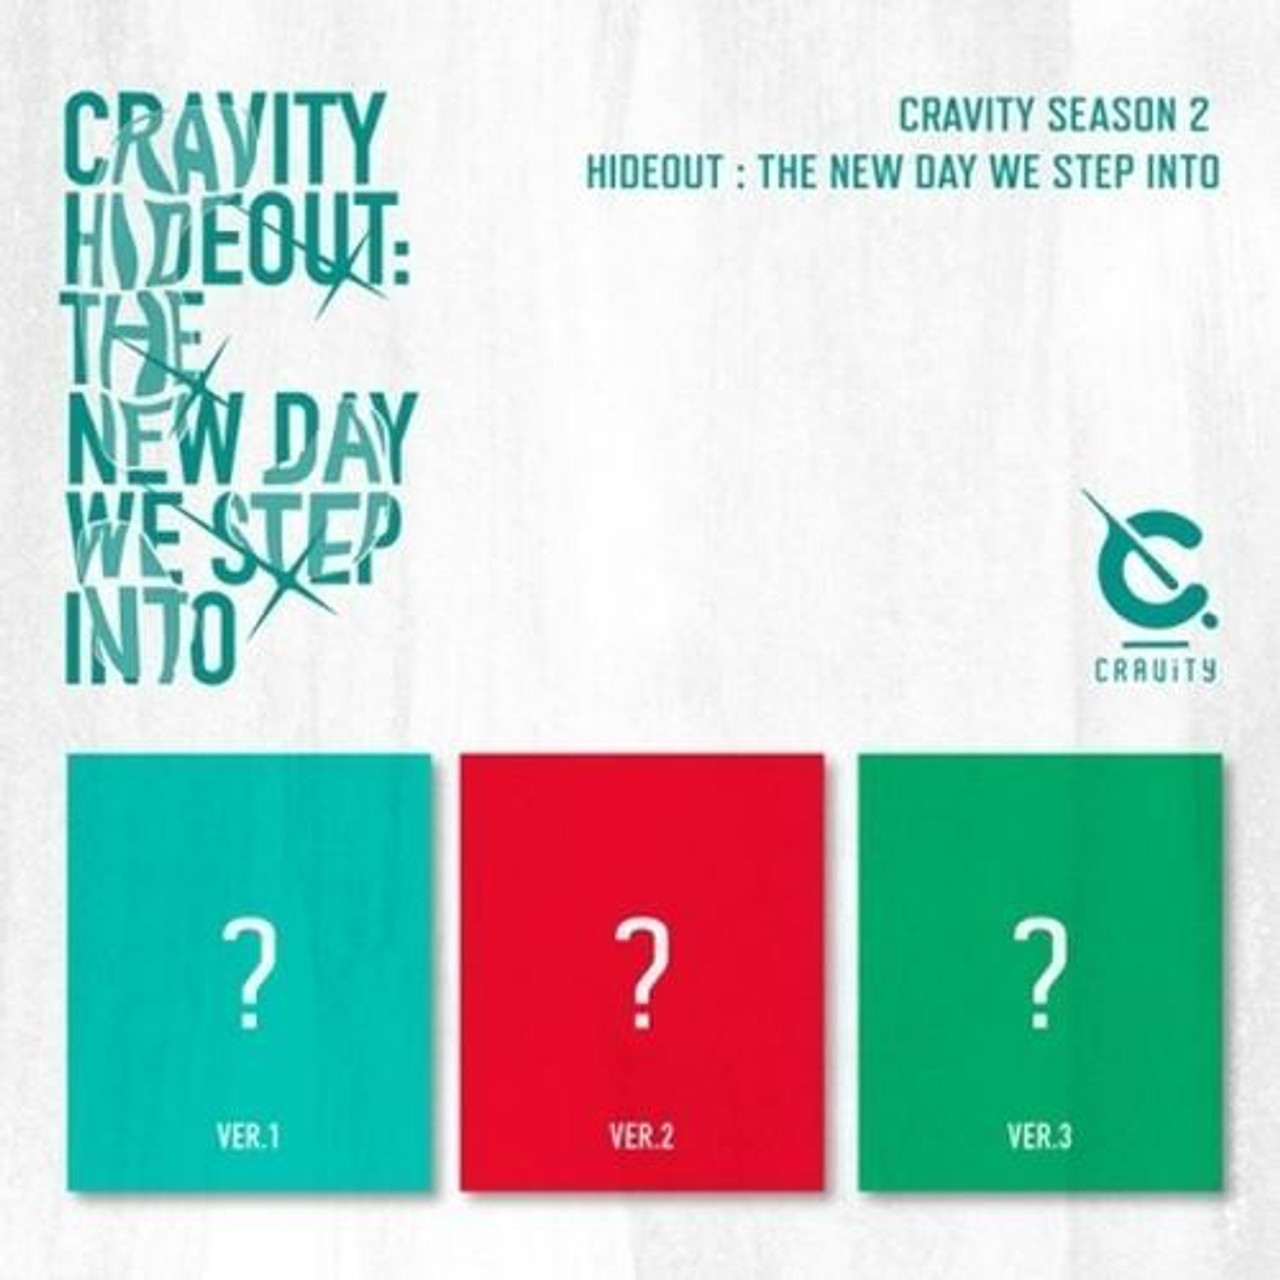 CRAVITY - SEASON2. [HIDEOUT: THE NEW DAY WE STEP INTO]